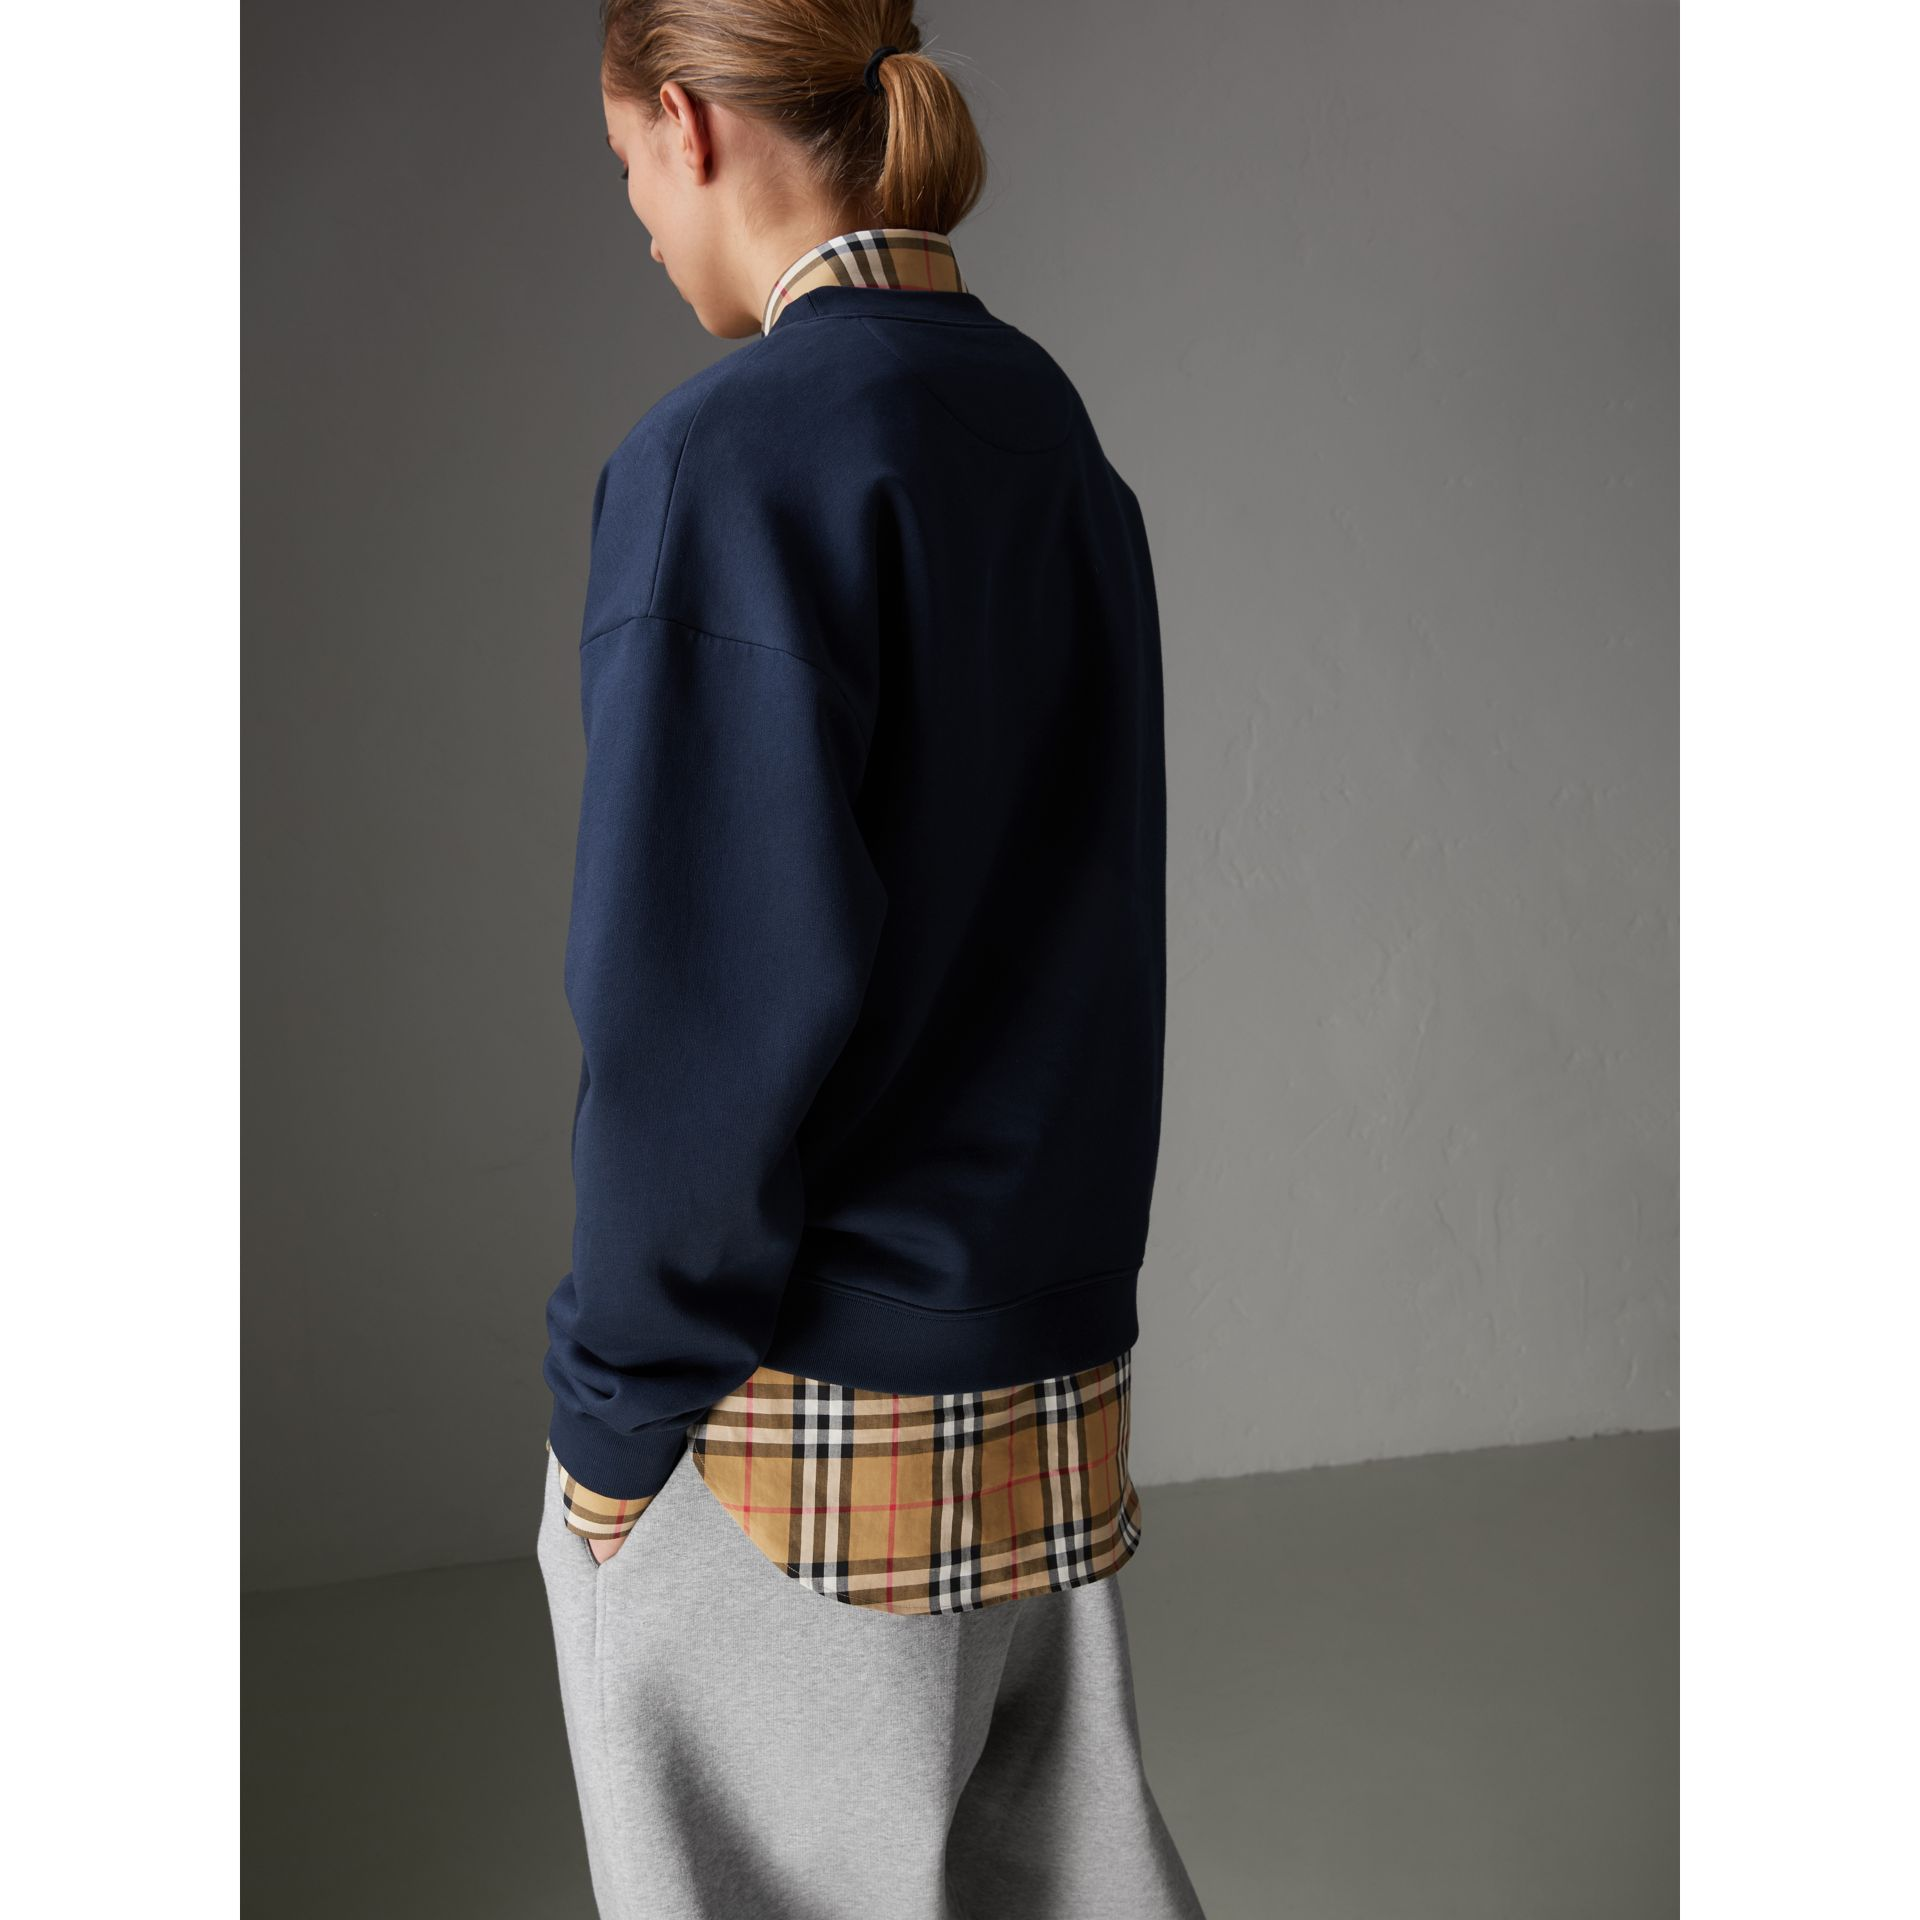 Sweat-shirt en jersey revisité (Bleu Marine) - Femme | Burberry - photo de la galerie 2